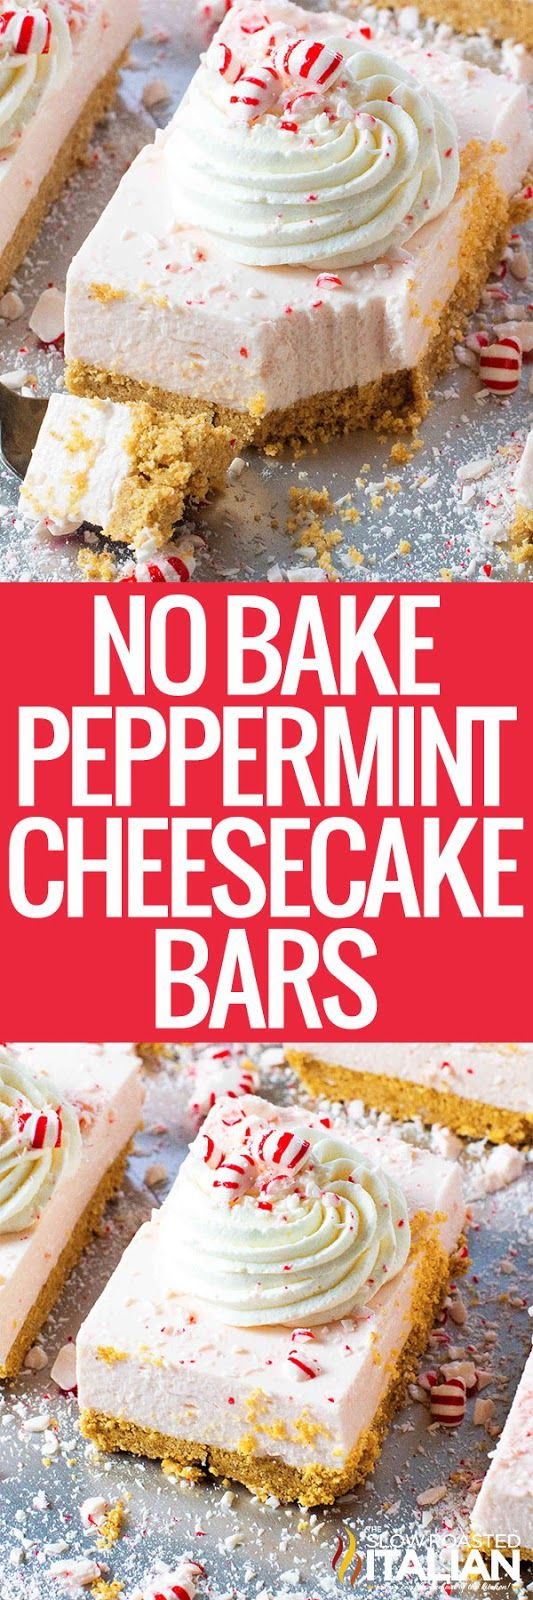 No-Bake Peppermint Cheesecake Bars (With Video)